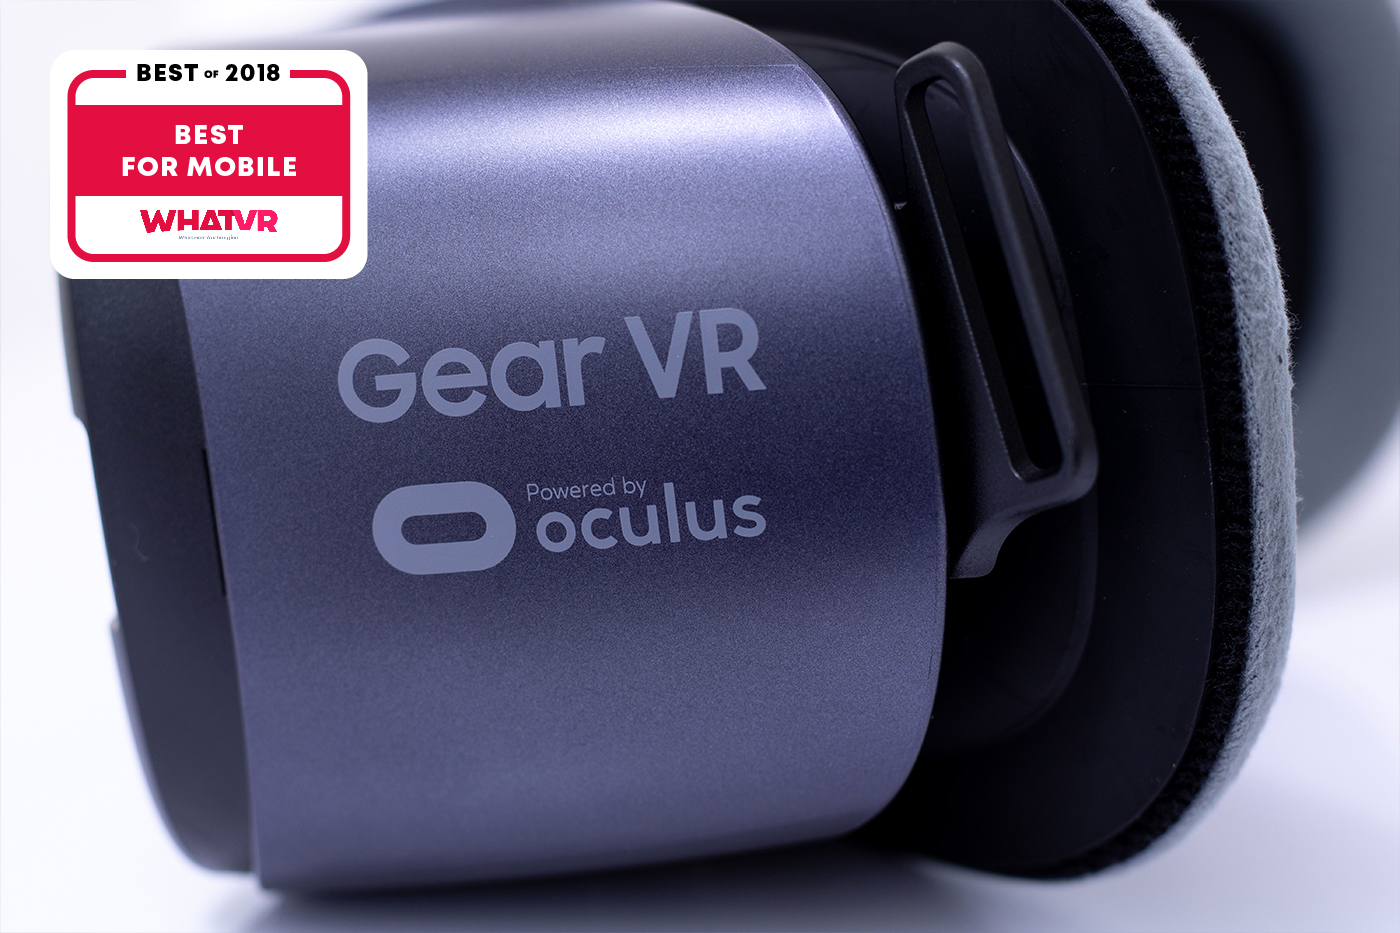 Best VR Headset for Mobile